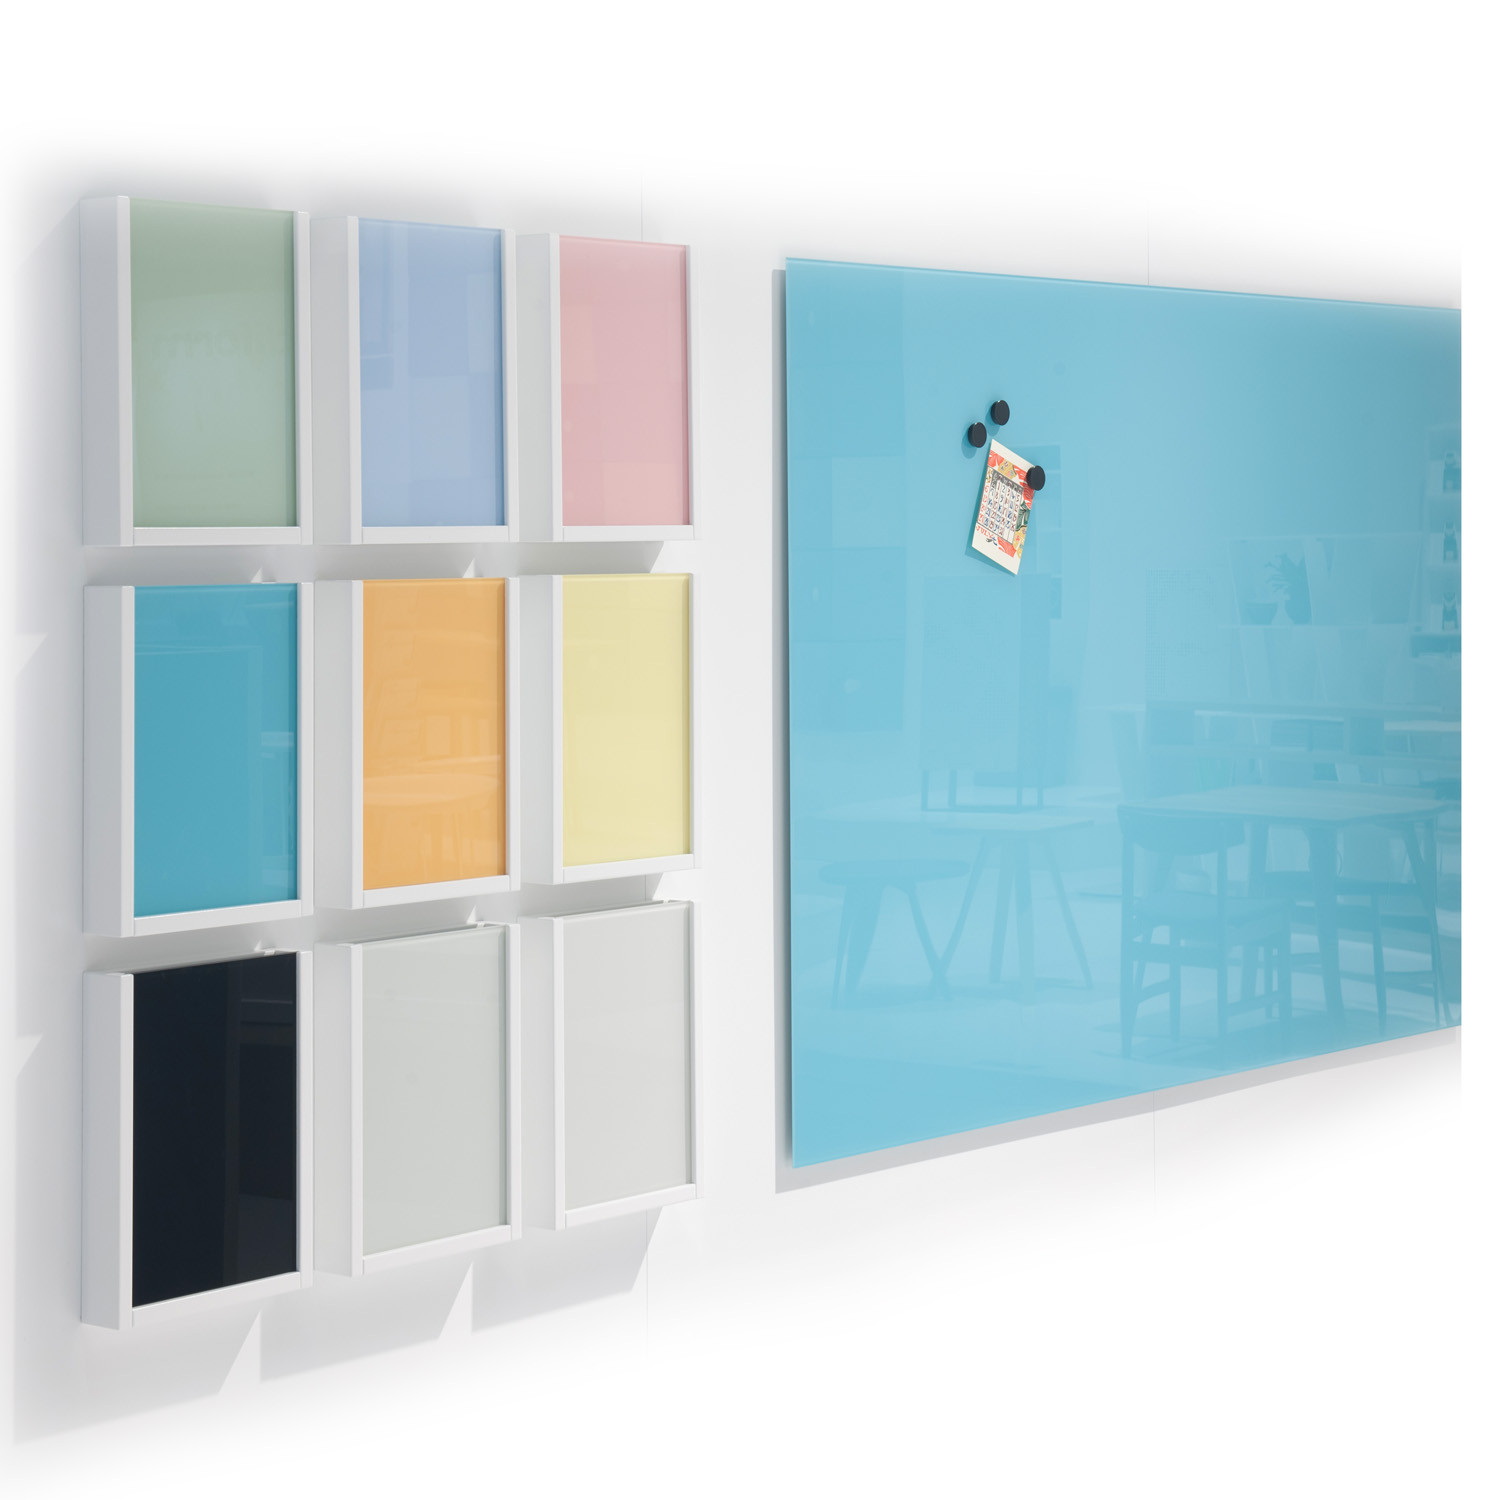 Help on writing glass boards